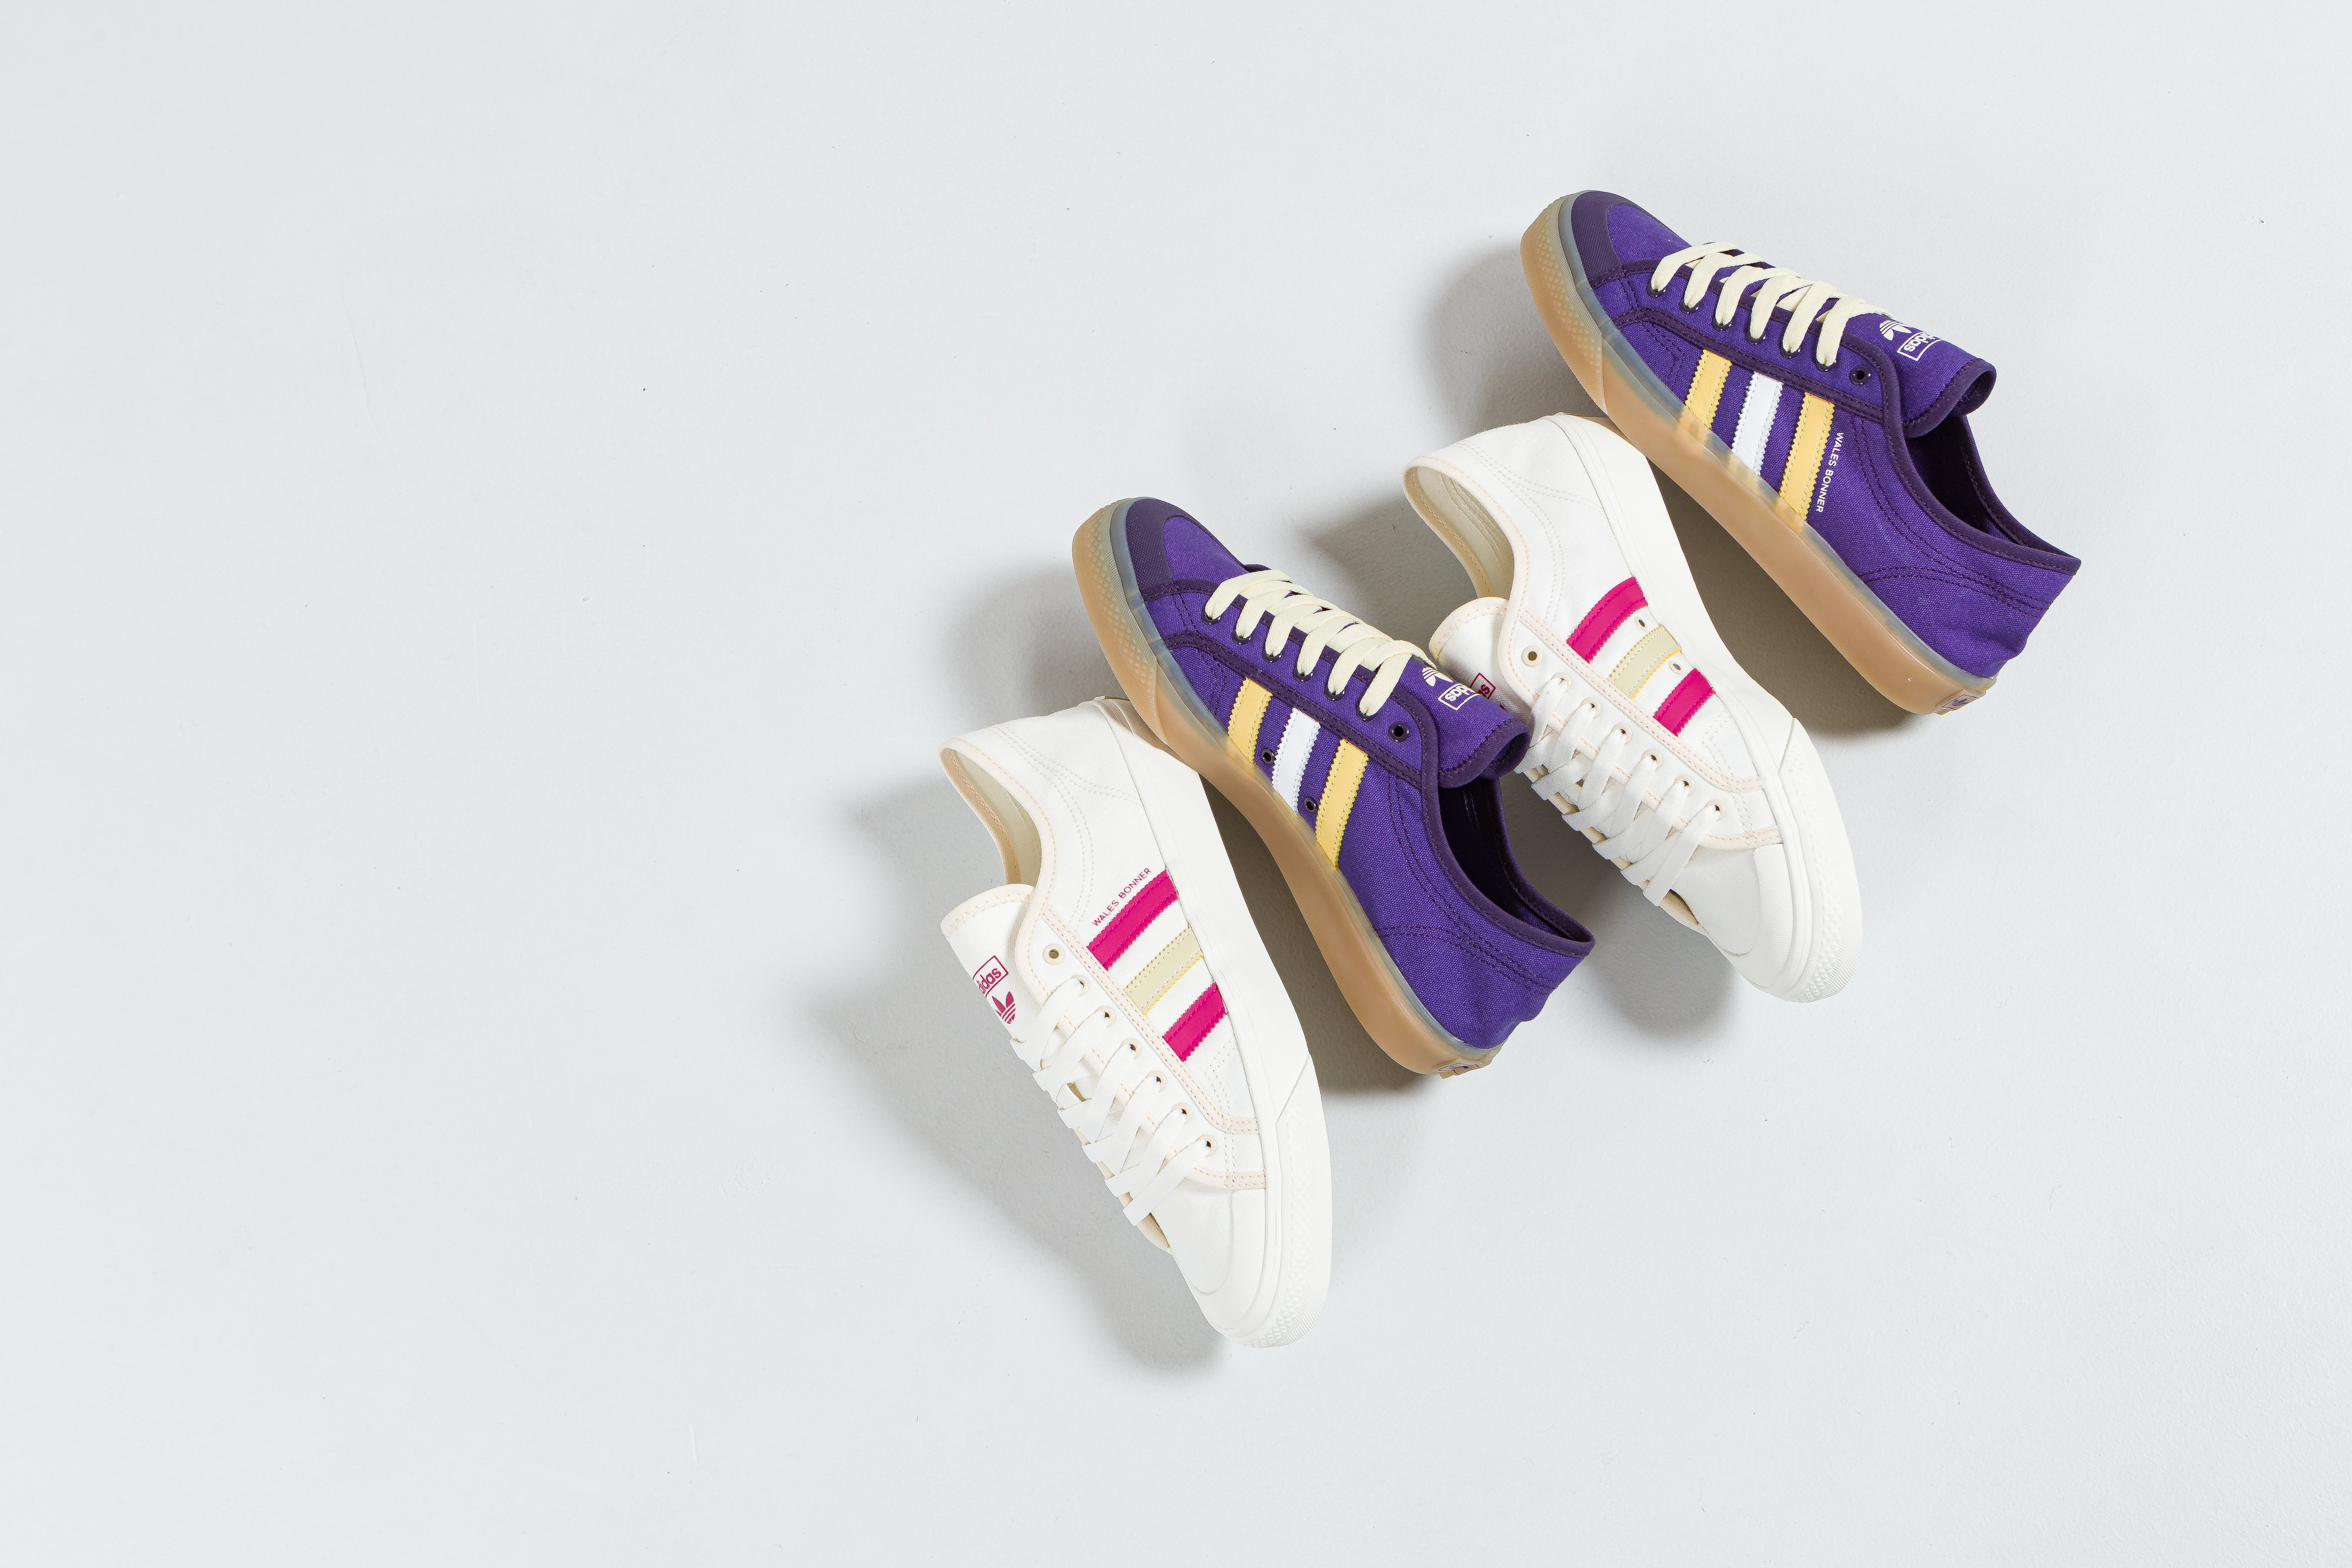 Up There Store - adidas Originals X Wales Bonner Spring Summer 2021